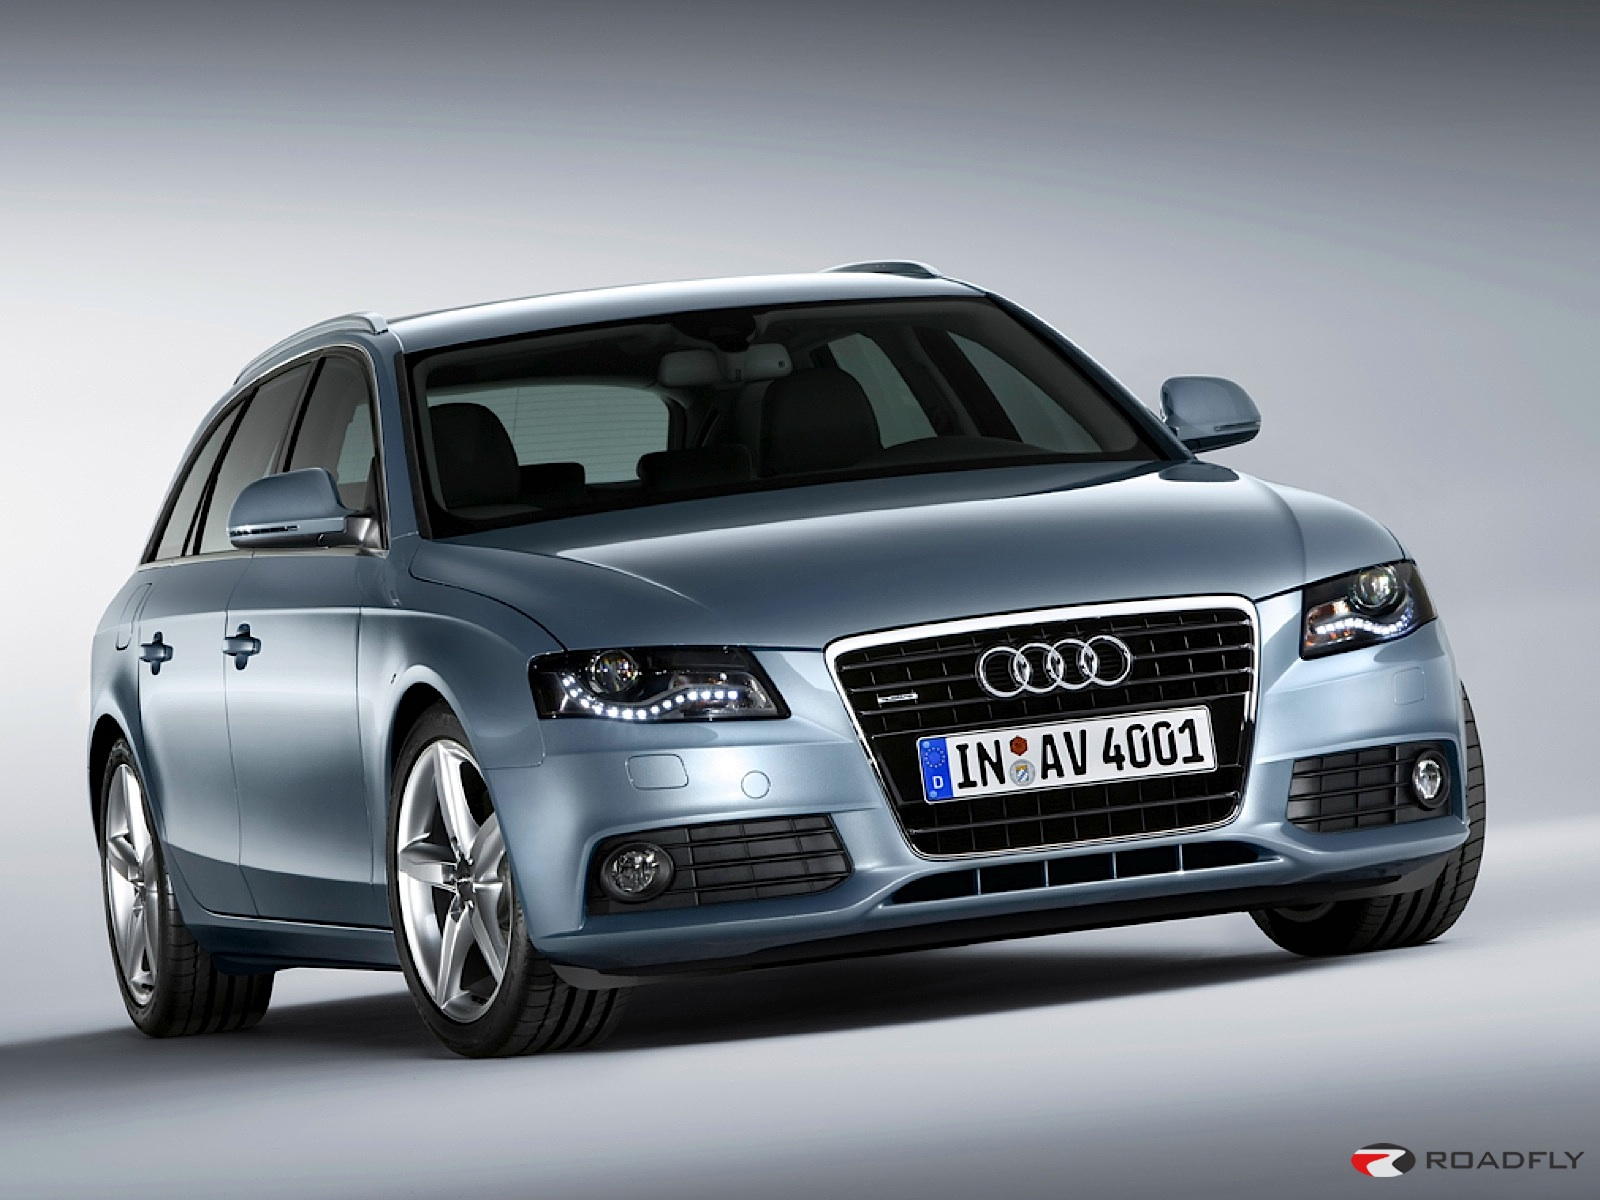 Latest Cars Models Audi Supermini To Crossover SUVs In Various - Audi various models